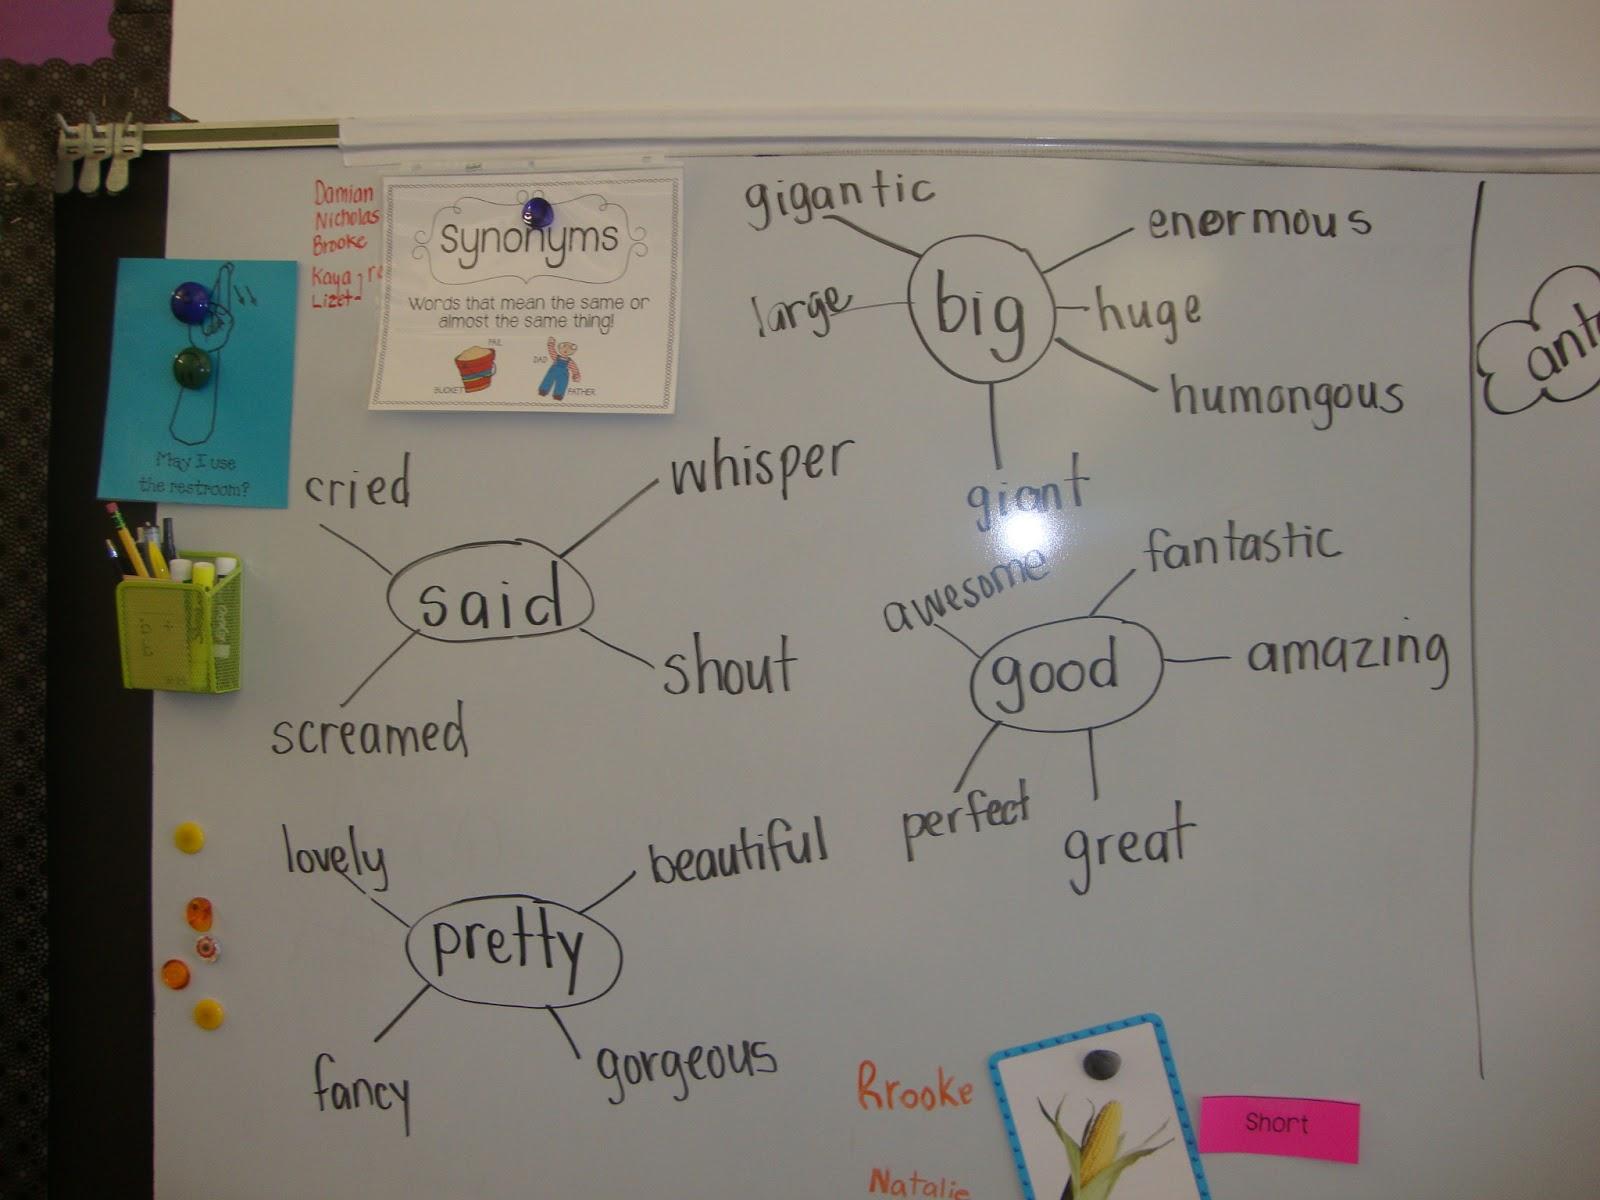 Today In First Grade: Synonyms and Antonyms!